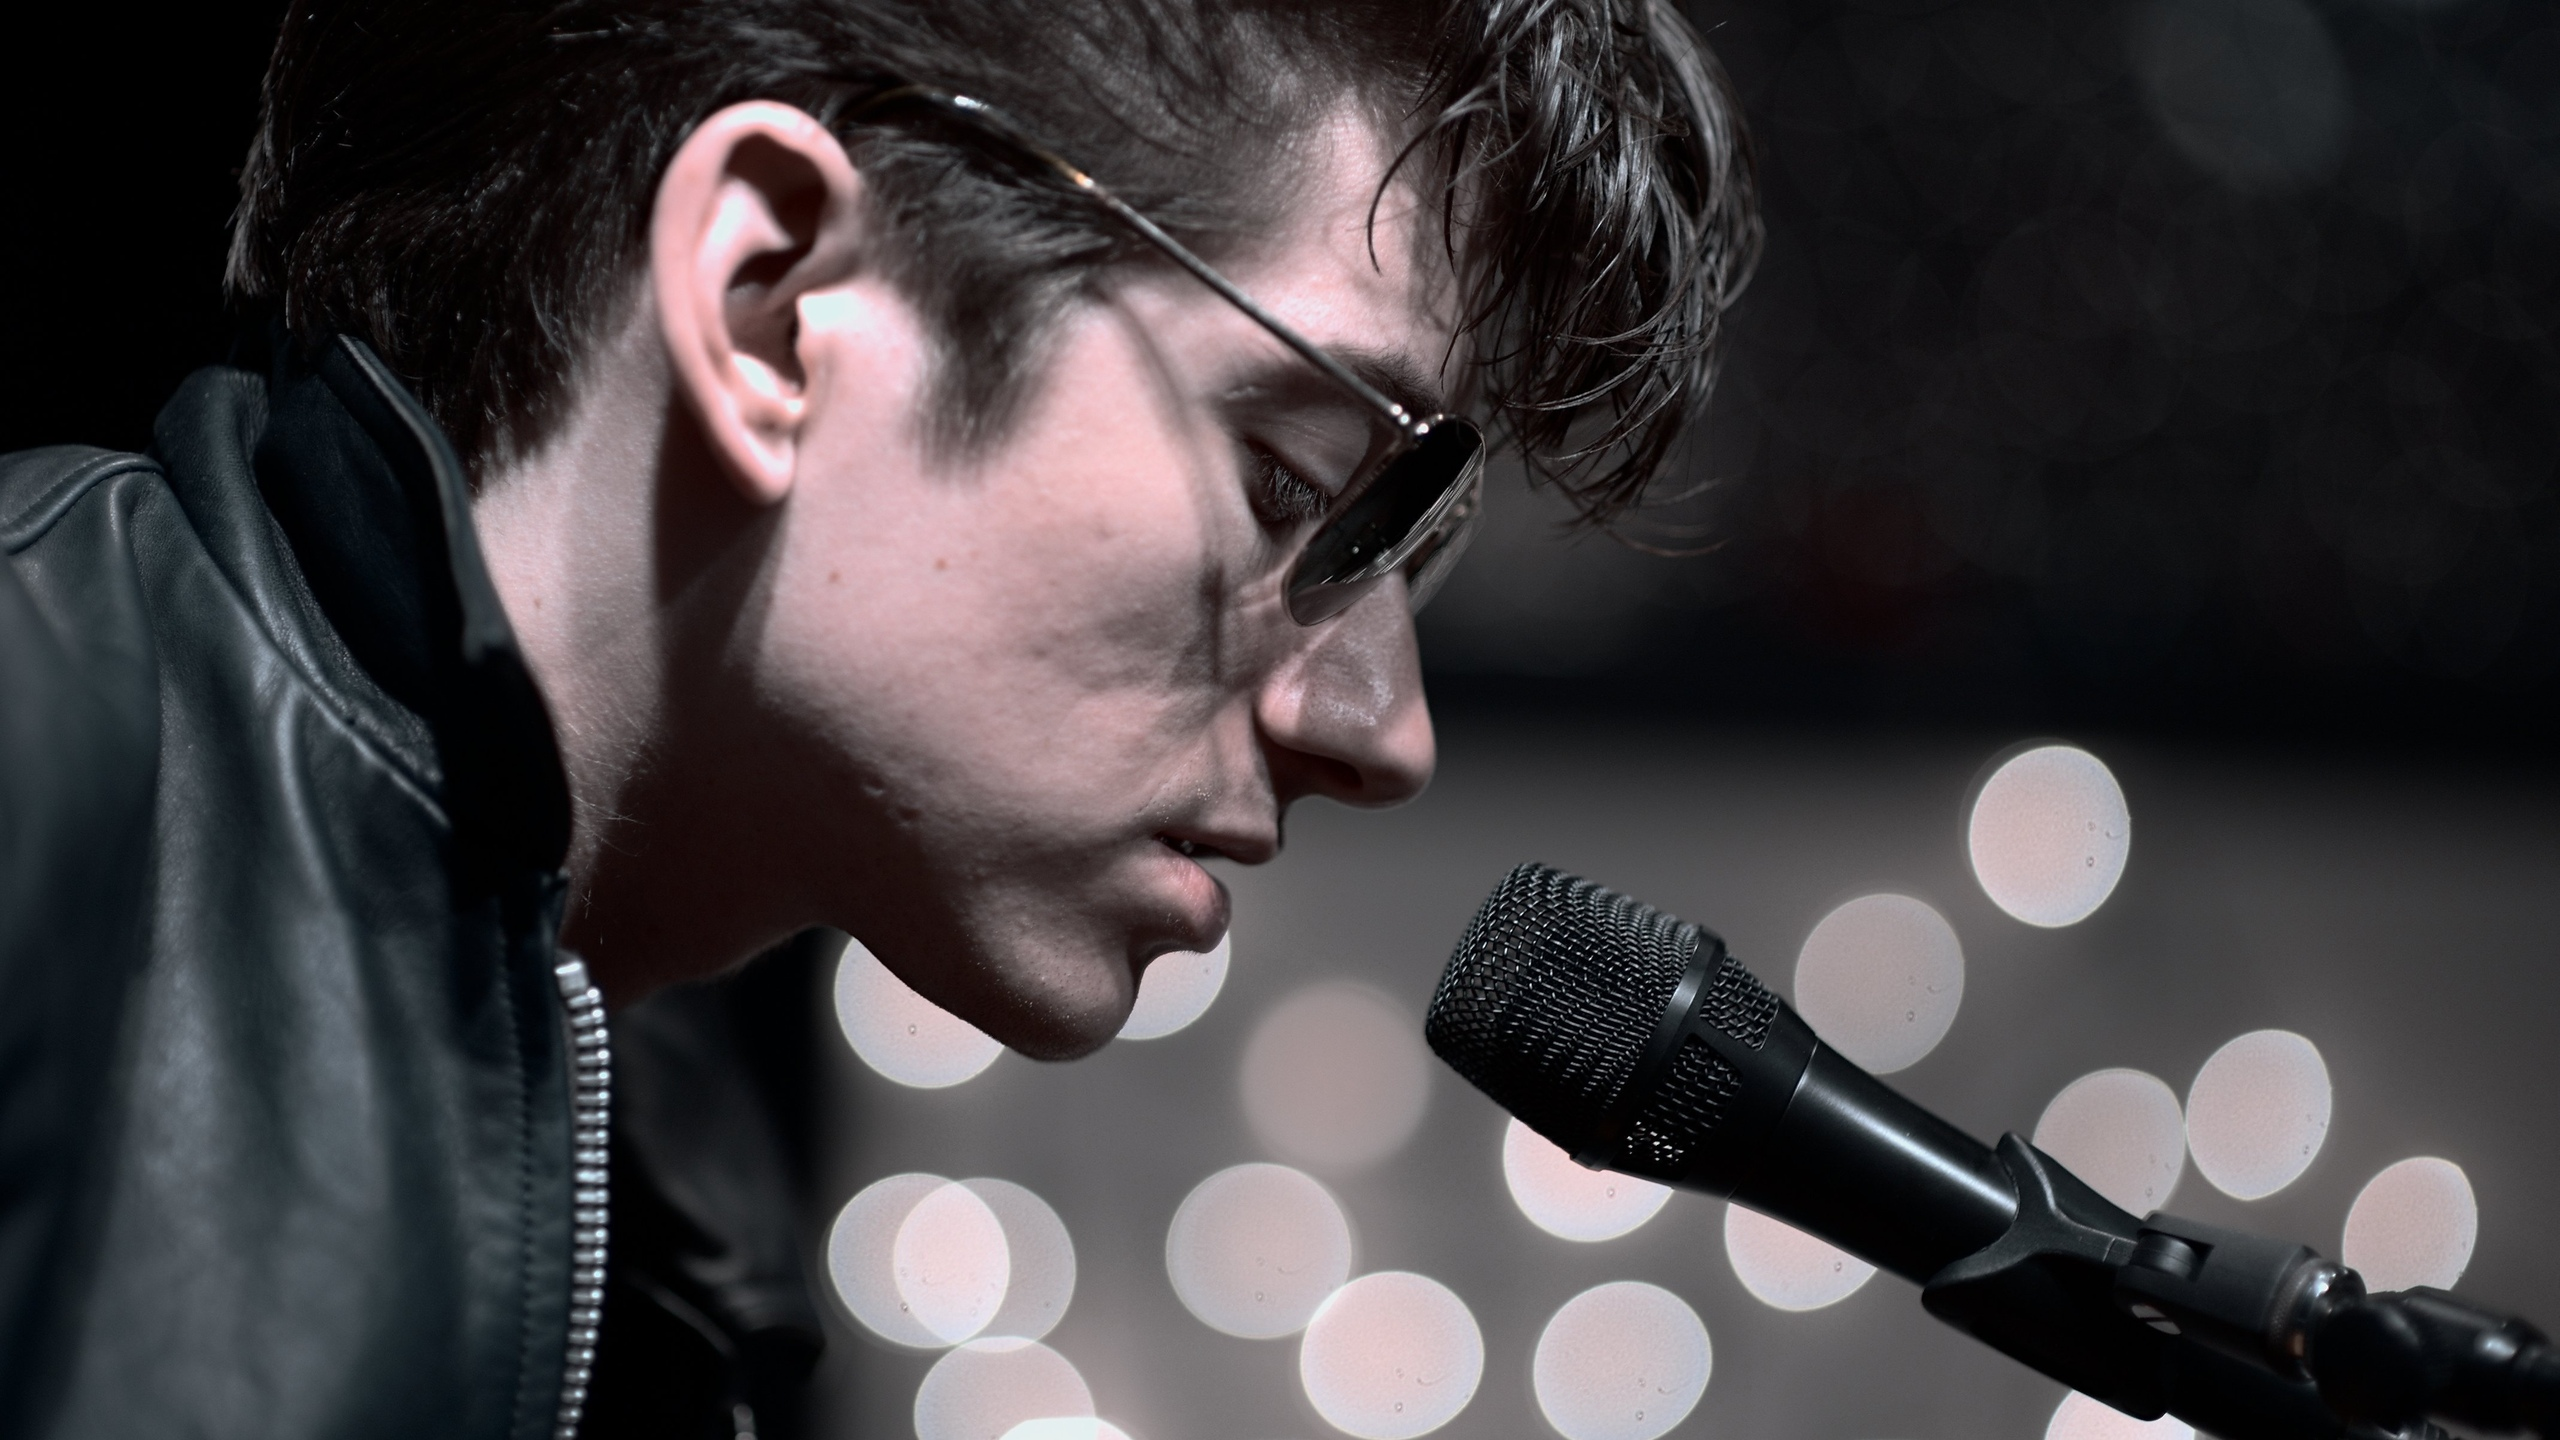 солист, alex turner, алекс тернер, man, macro, мужчина, arctic monkeys